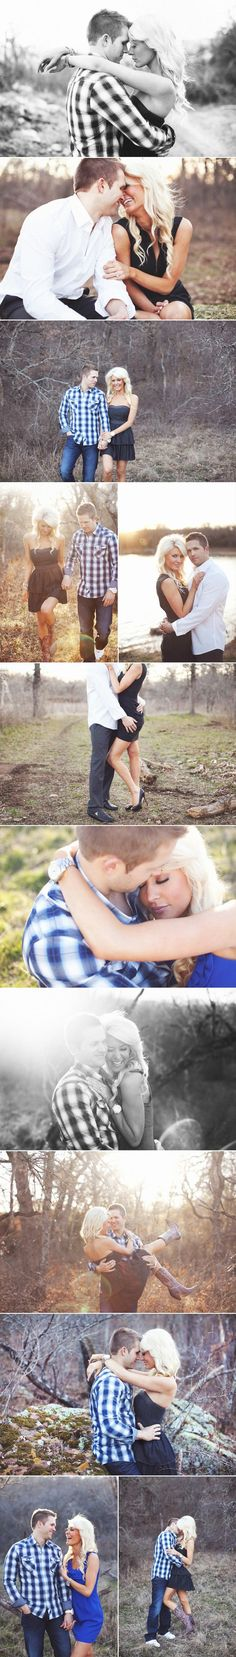 engagement pictures love these so much the slight change of outfits is amazing